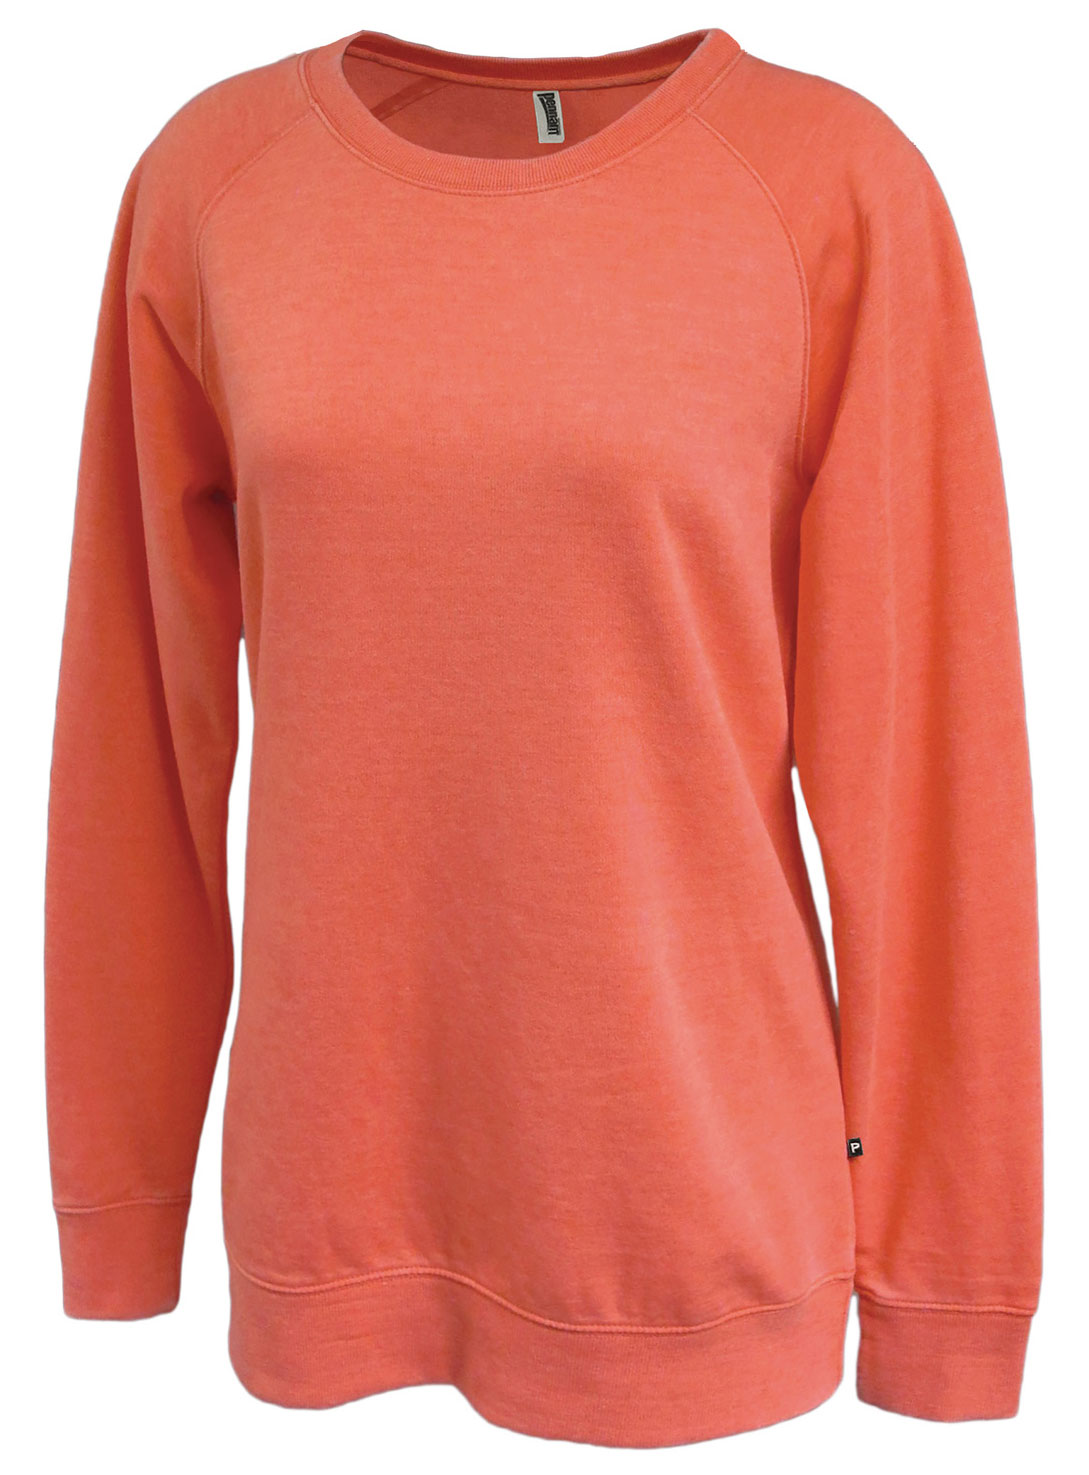 Sahara Fleece Womens Crewneck